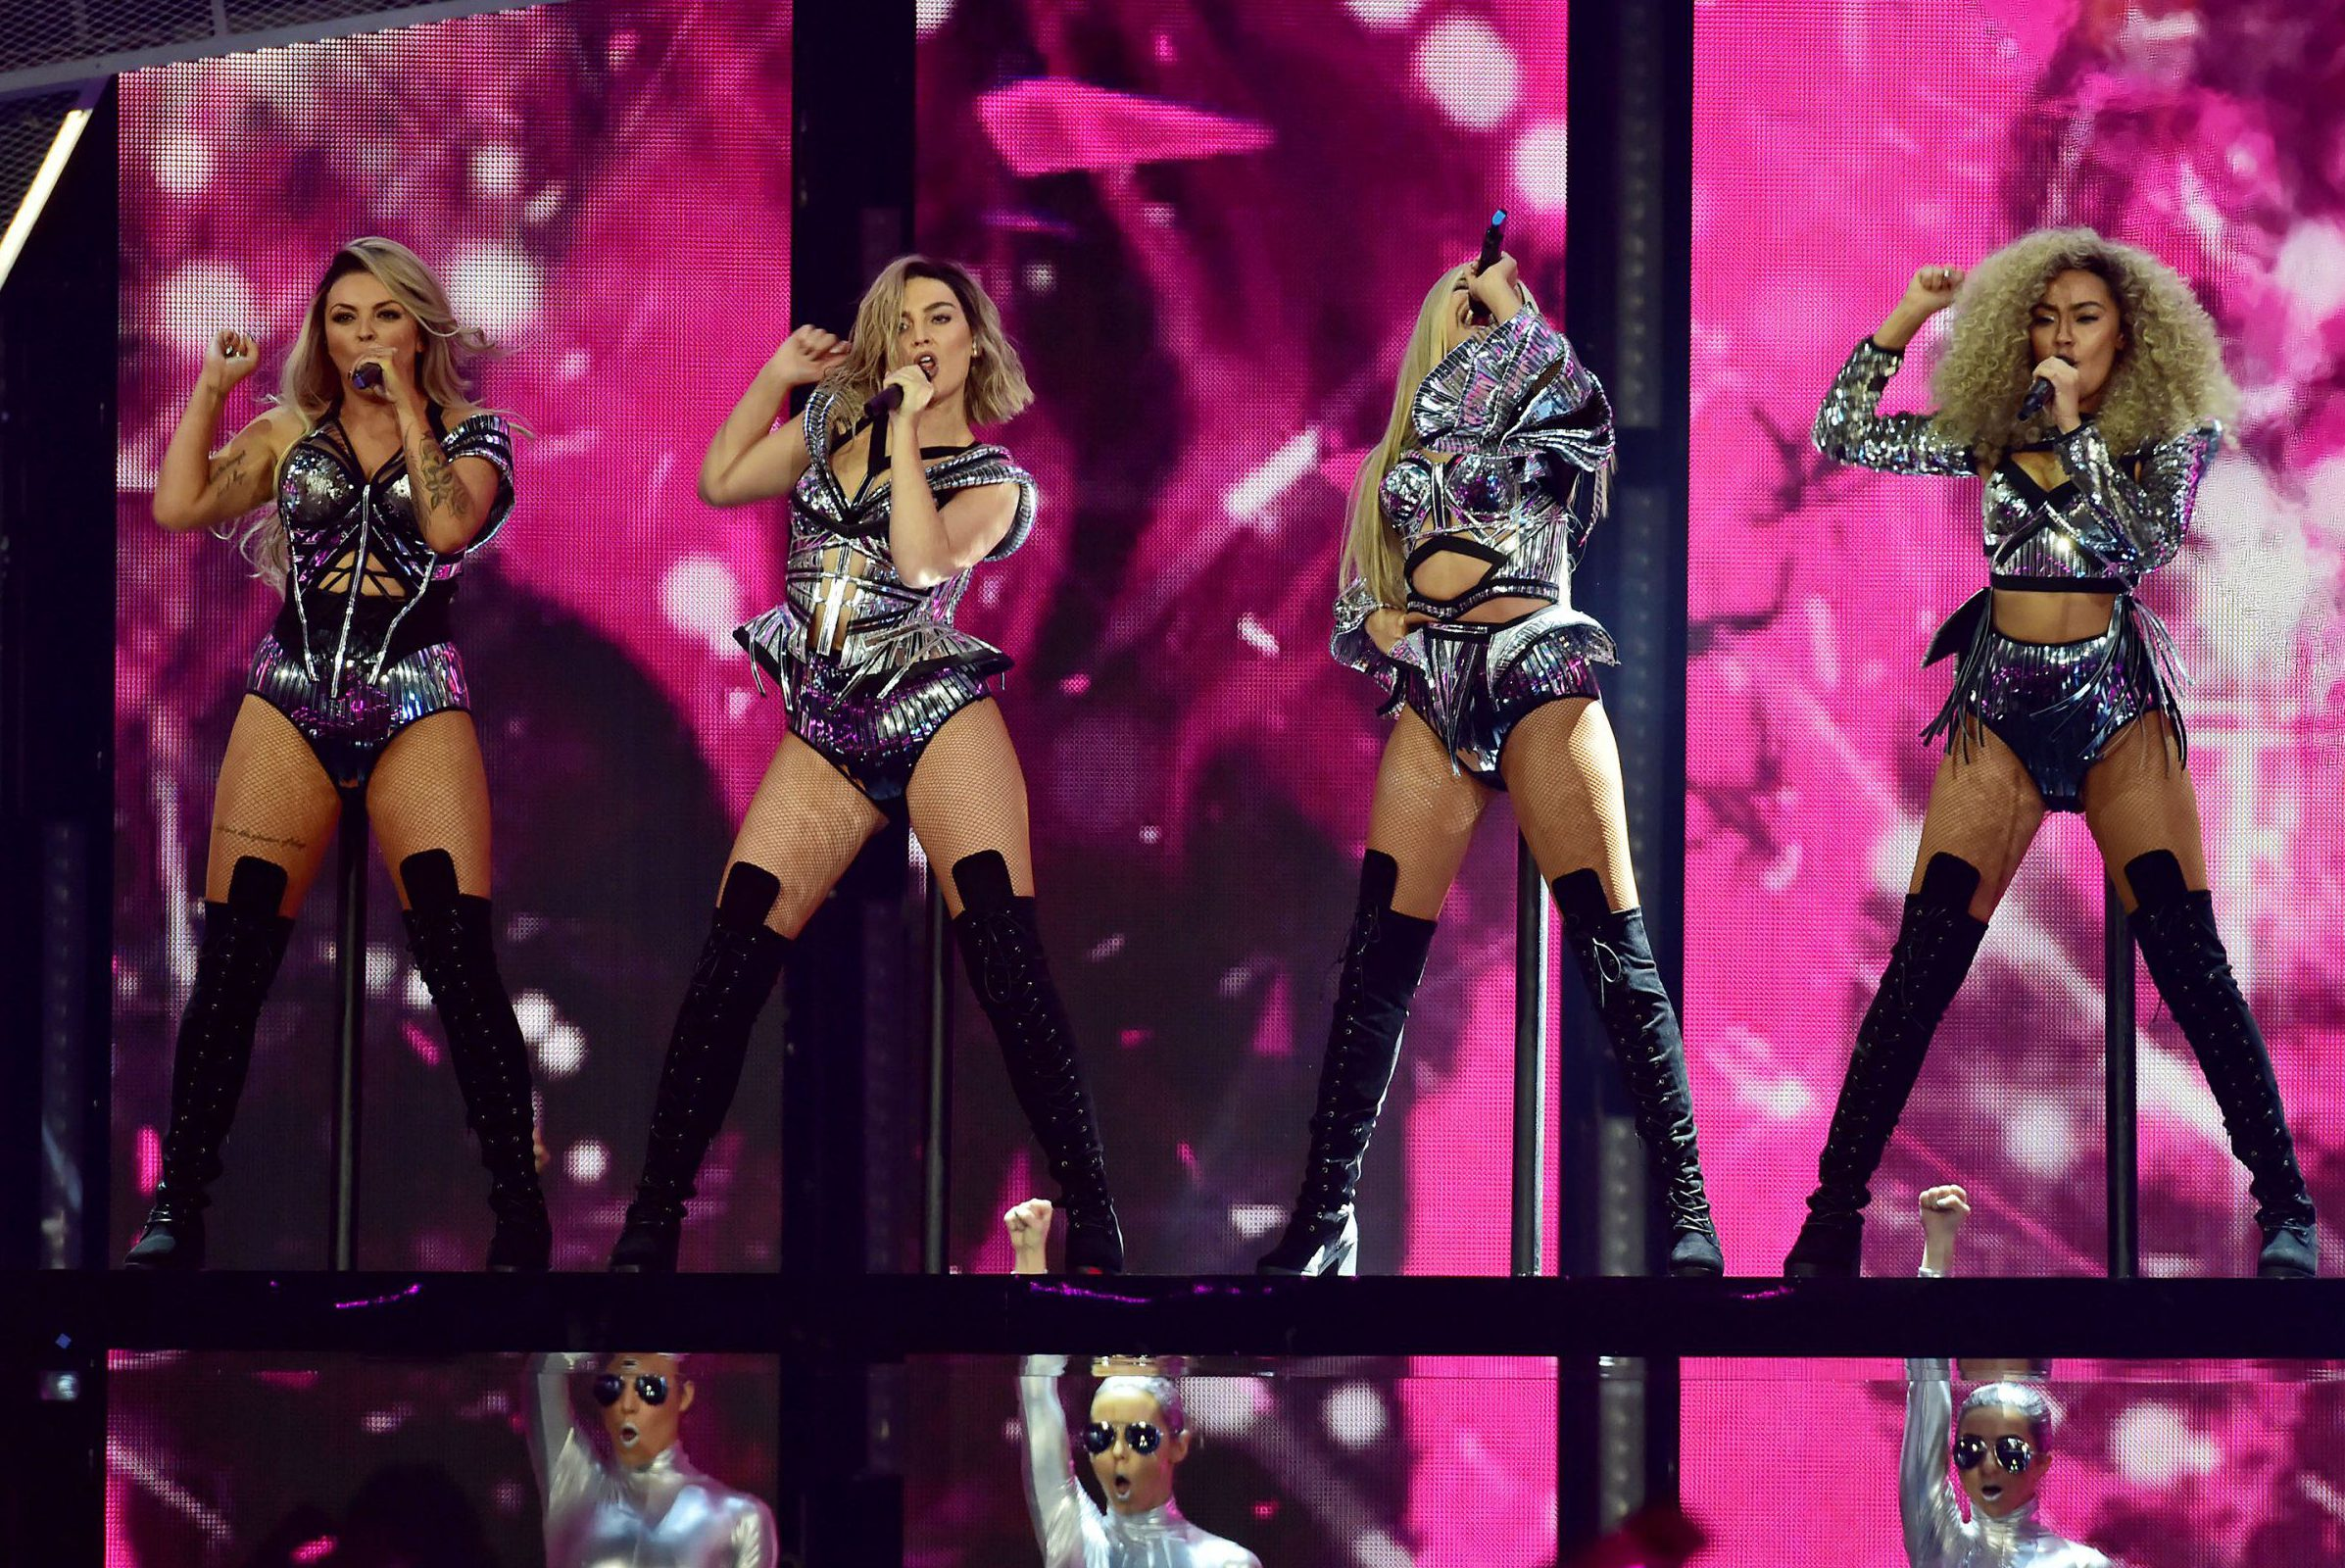 'Don't ever be afraid': Little Mix dedicate song to LGBTQ fans after U.S. gig